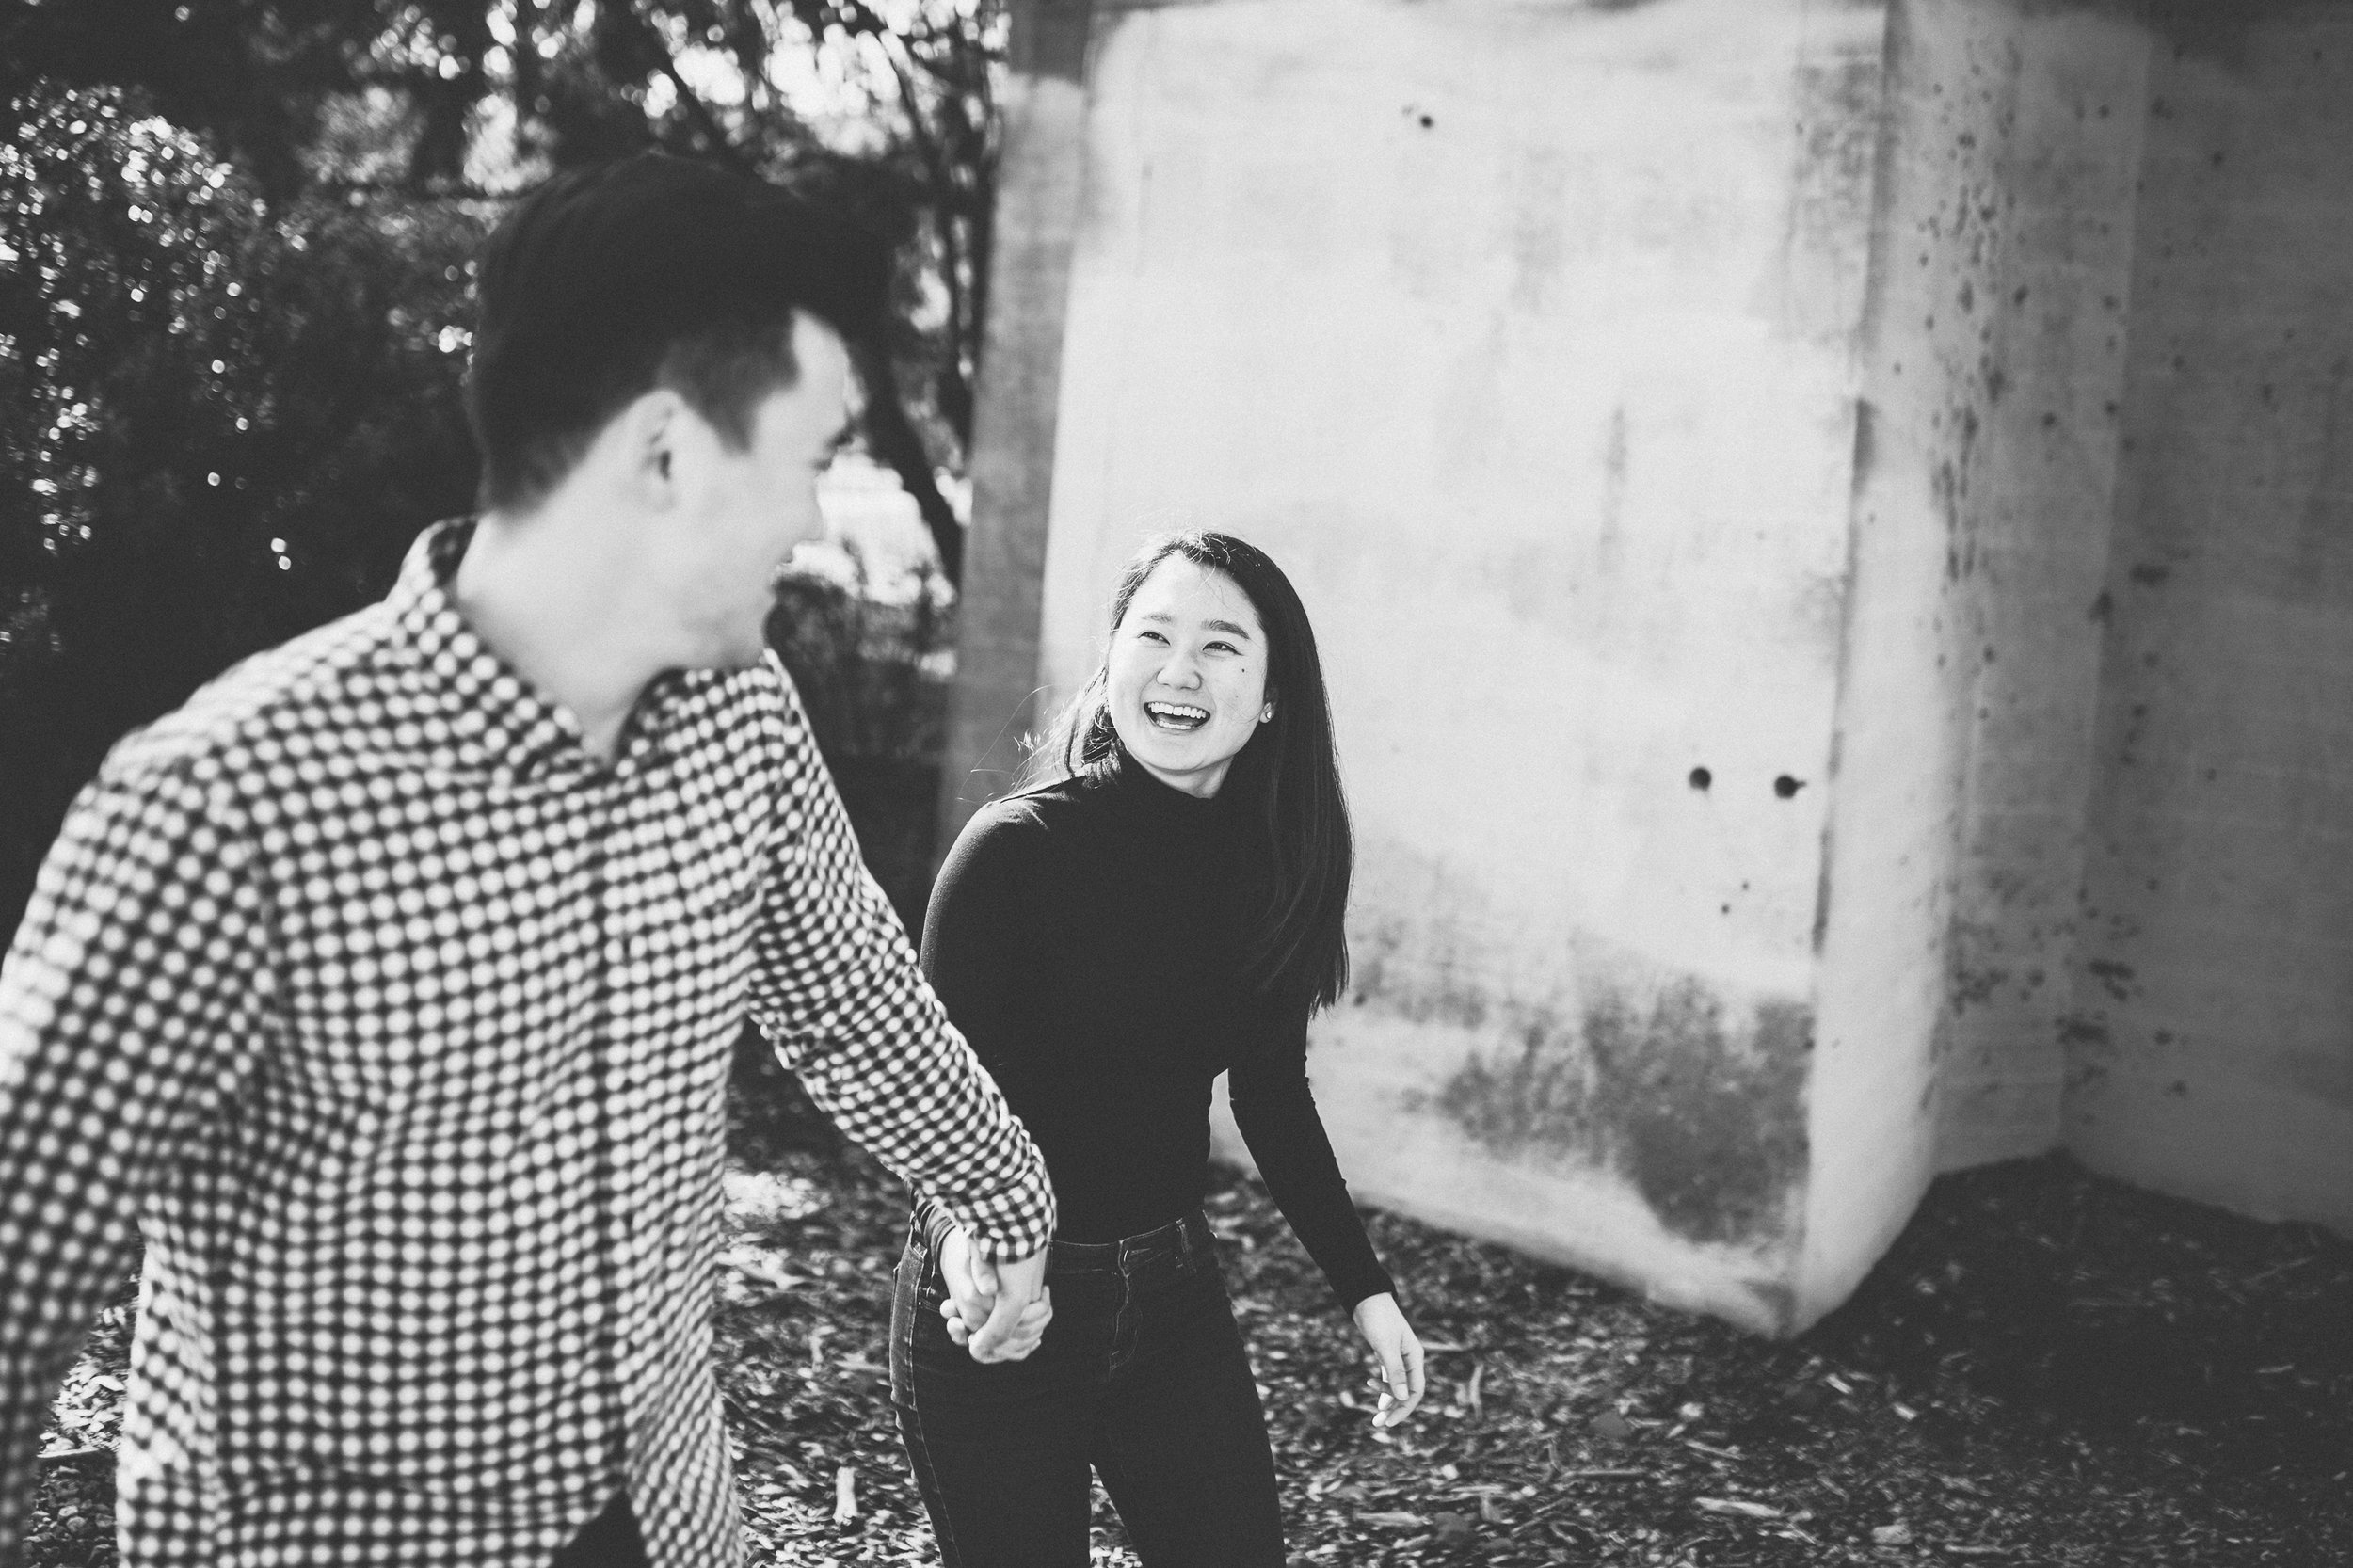 cathedral-park-engagement-photography-12.jpg